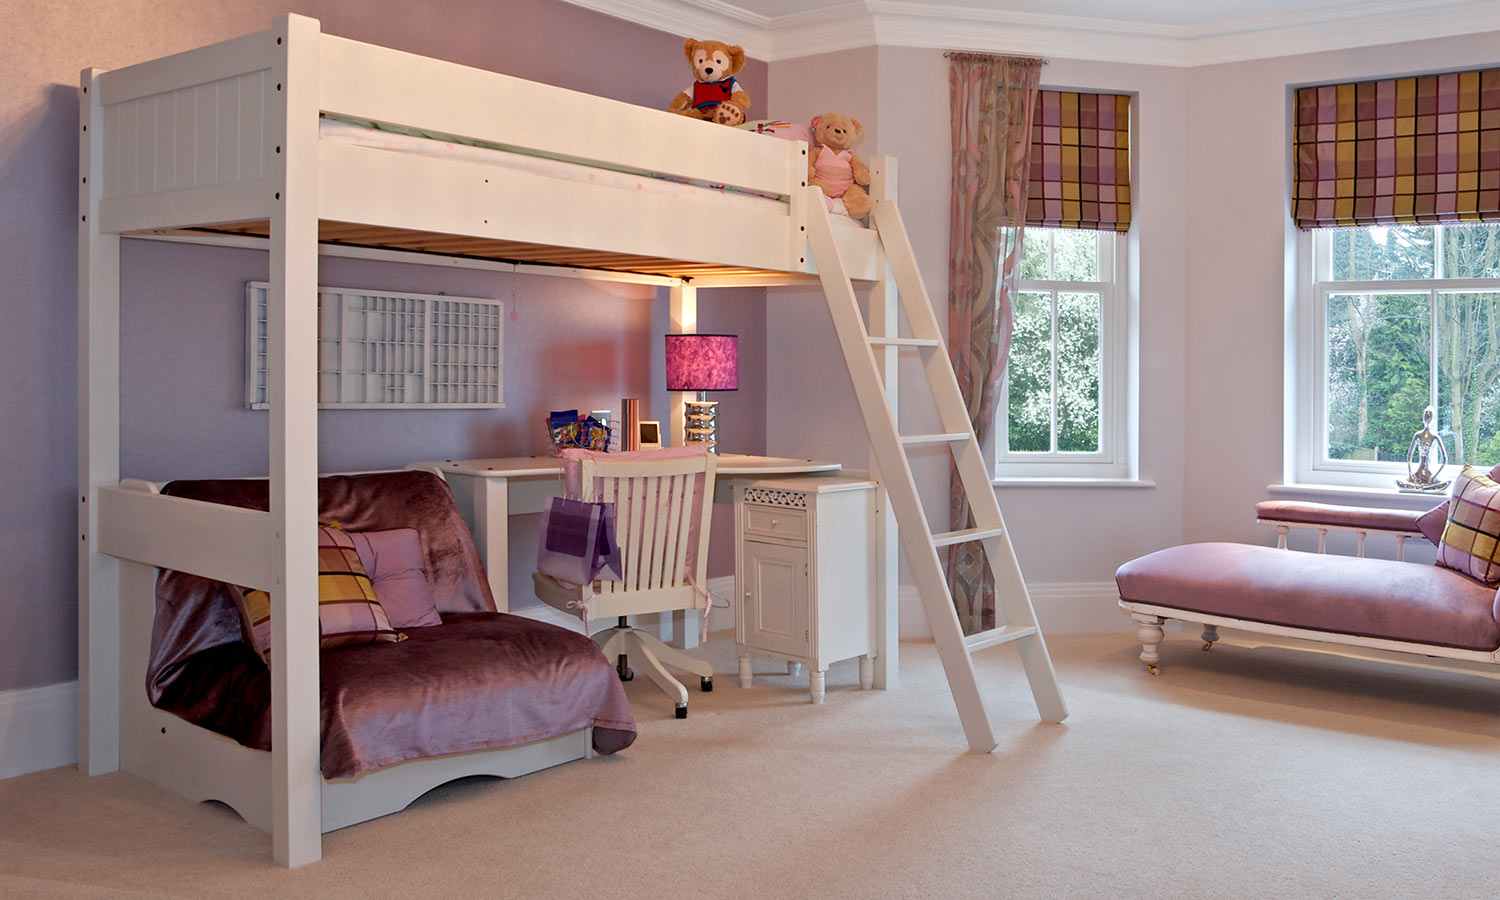 A lofted bed with a play area underneath